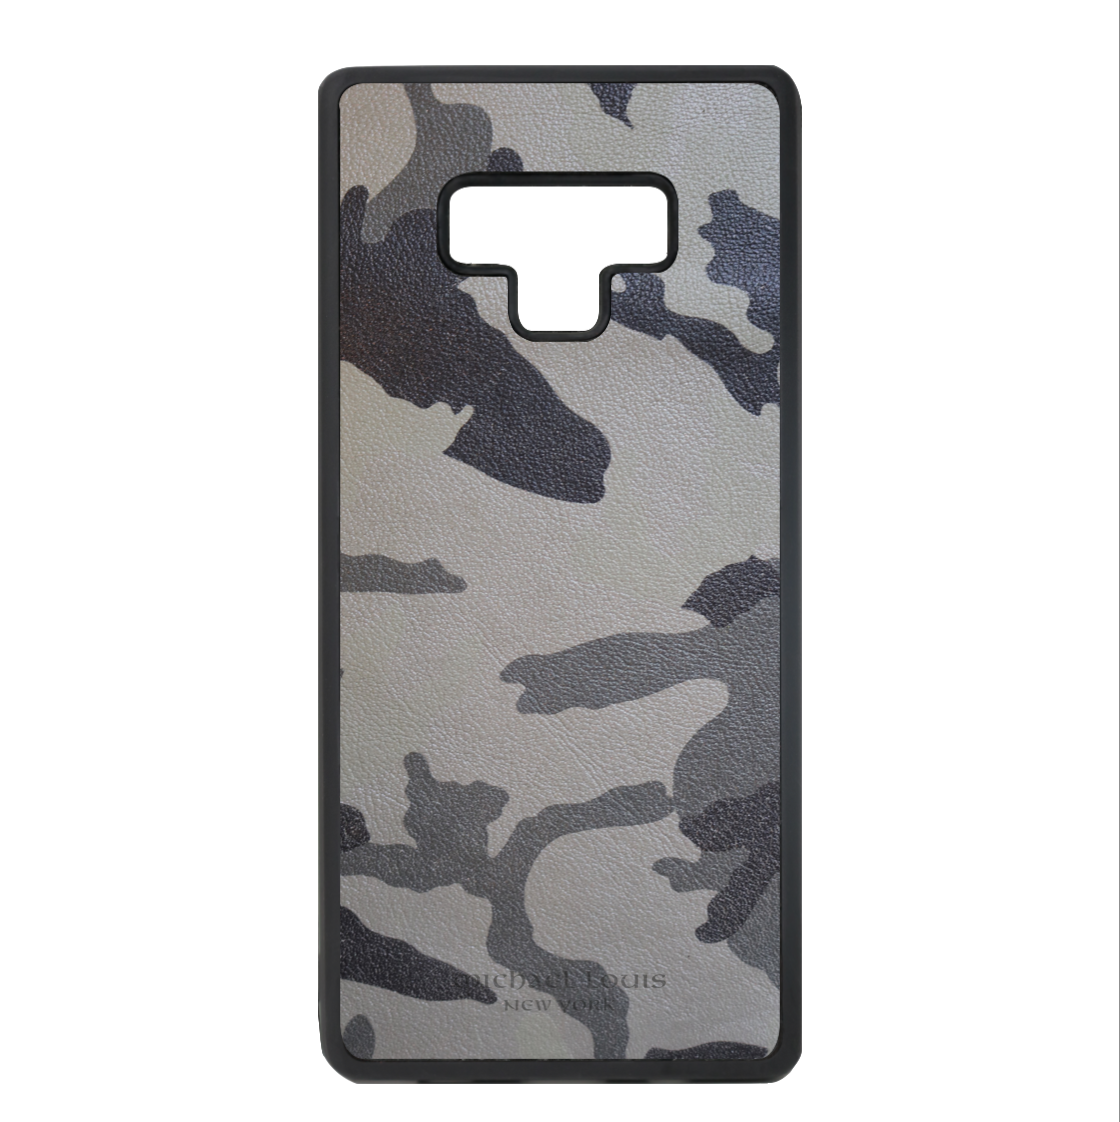 finest selection cf470 5c97d Grey Camo Leather Galaxy Note 9 Case